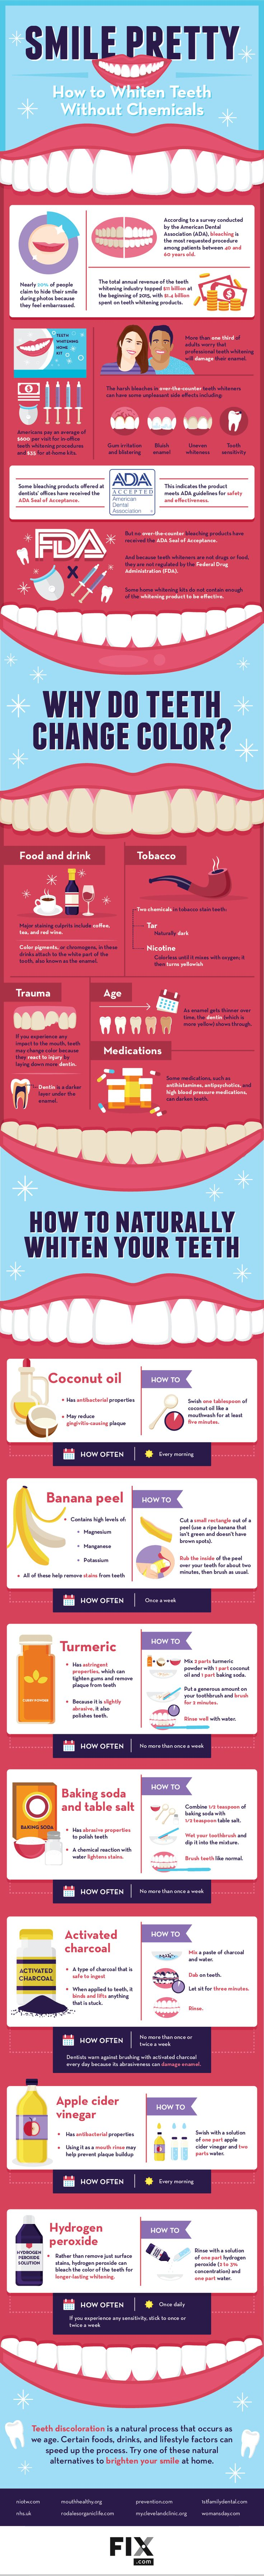 How To Whiten Your Teeth Without Chemicals http://www.rodalesorganiclife.com/wellbeing/how-to-whiten-your-teeth-without-chemicals?utm_source=RLF01